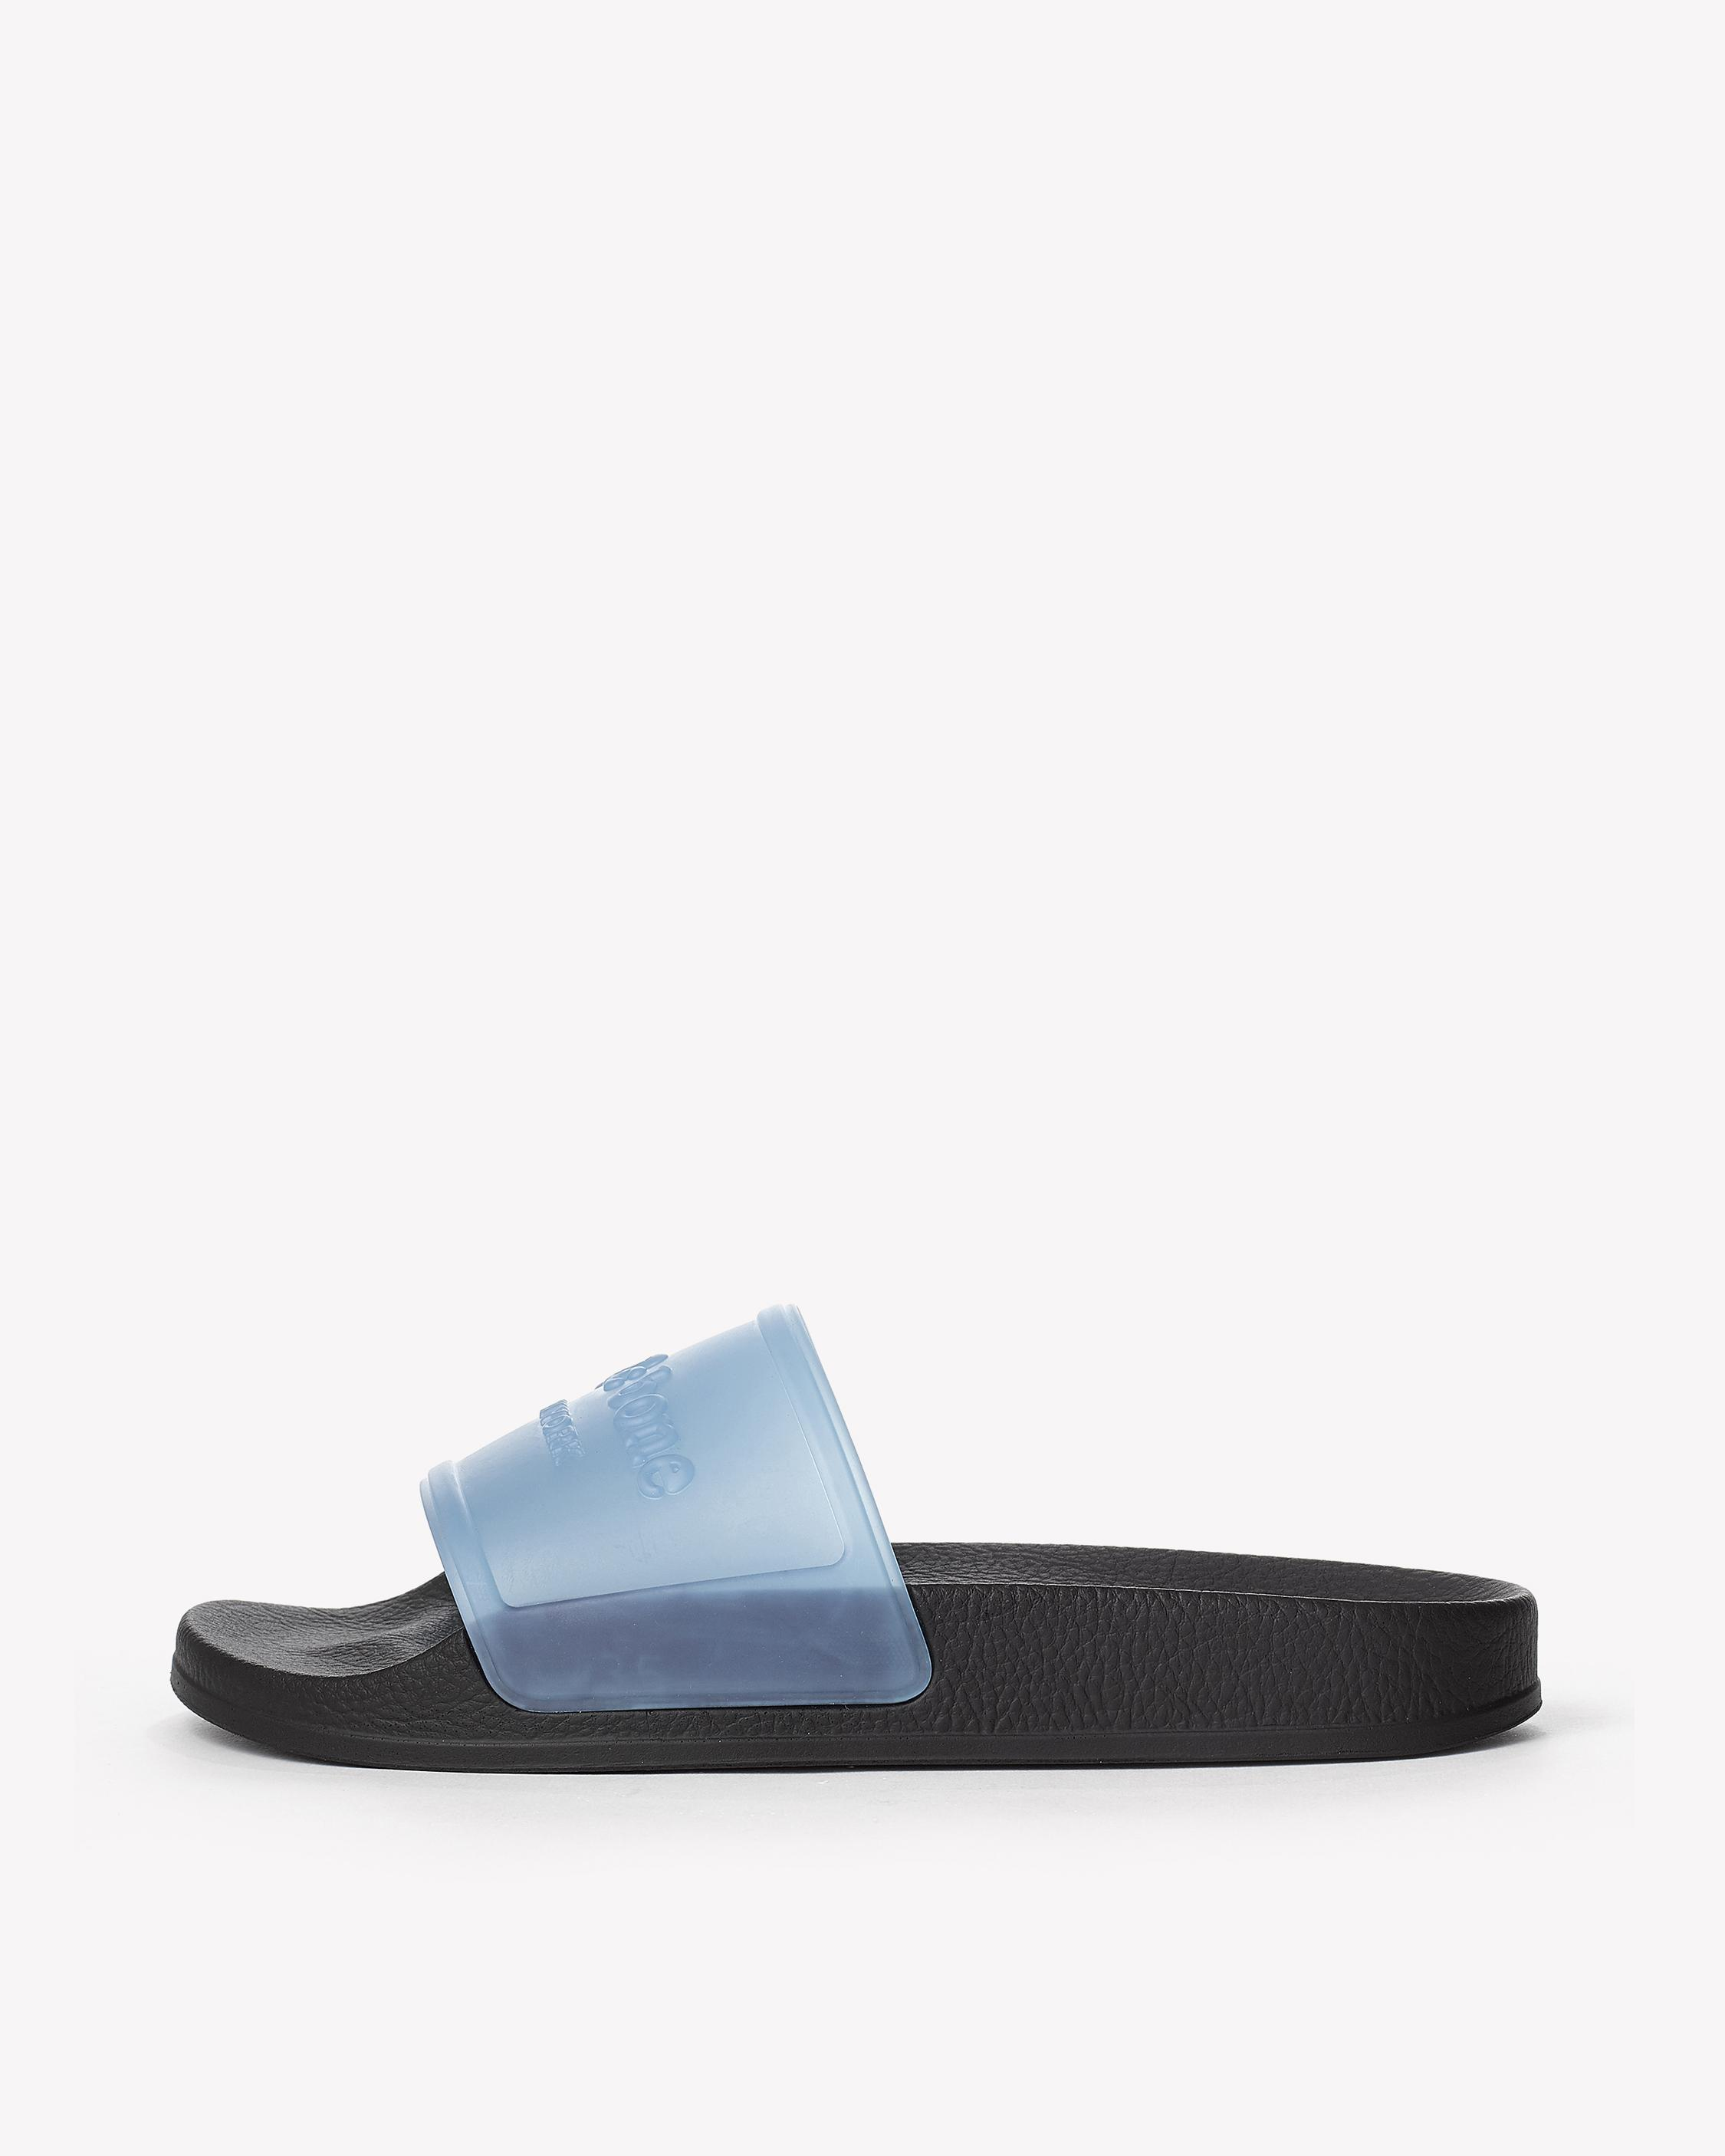 Rag & Bone RB Pool Slide Sandals shop cheap online cheap sale low price cheap sale websites recommend for sale a1vJk3a